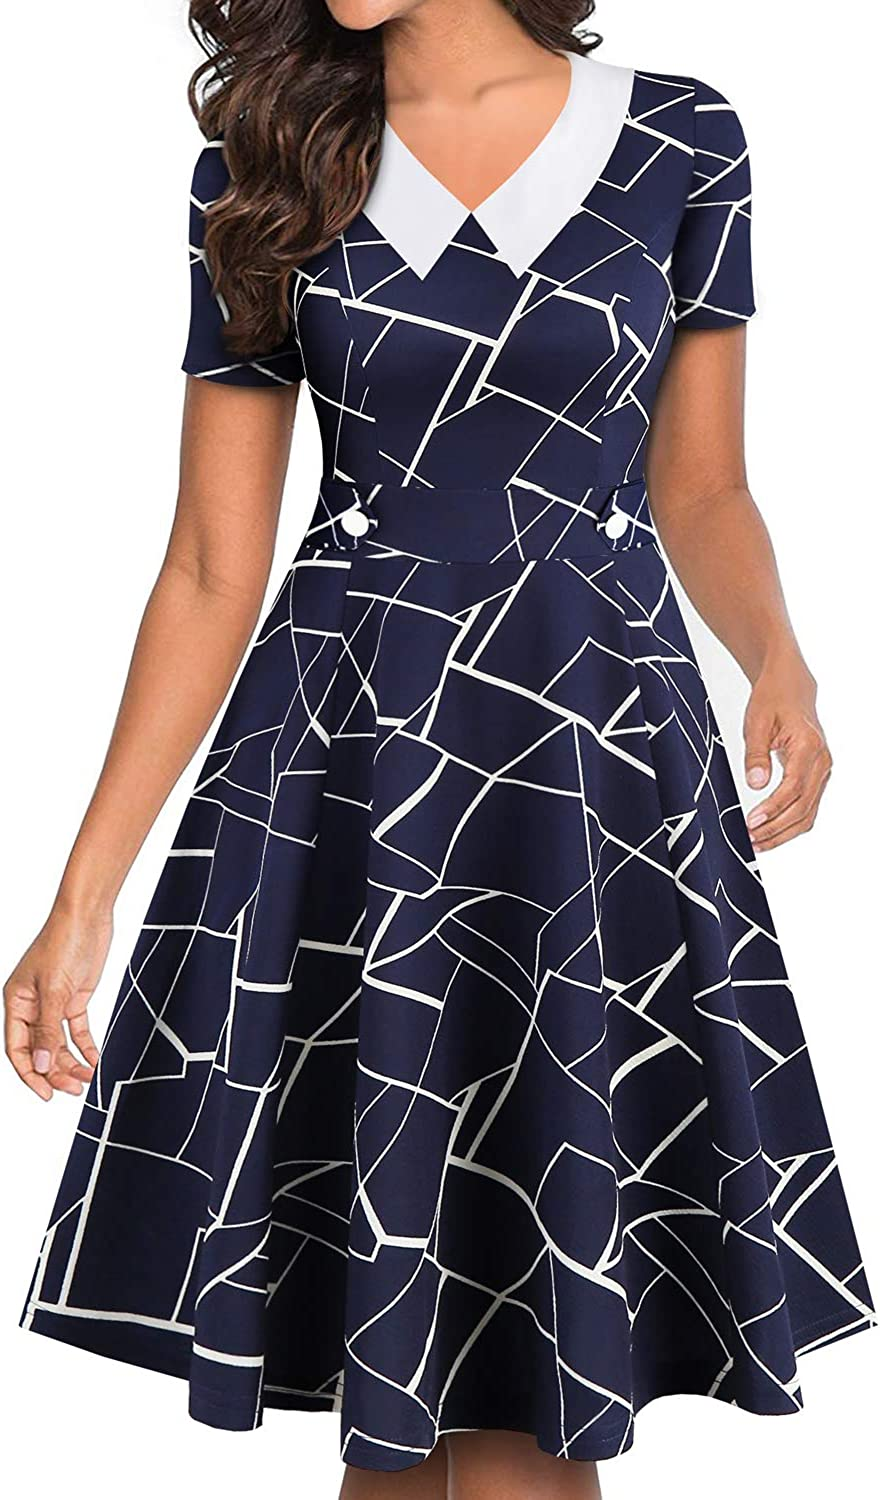 YATHON Women's Vintage Peter Pan Collar Fit and Flare A-Line Swing Work Casual Dresses